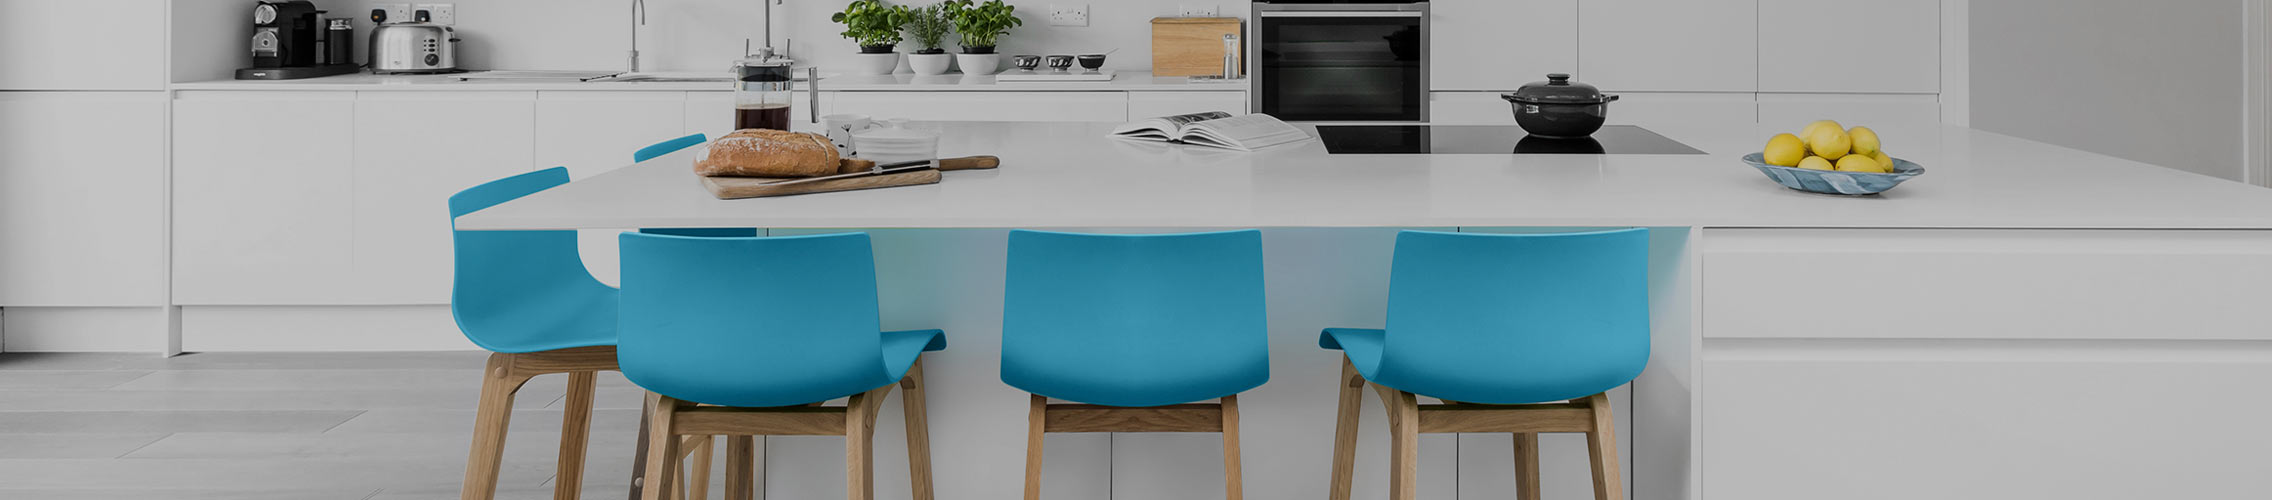 Blue Kitchen Stools